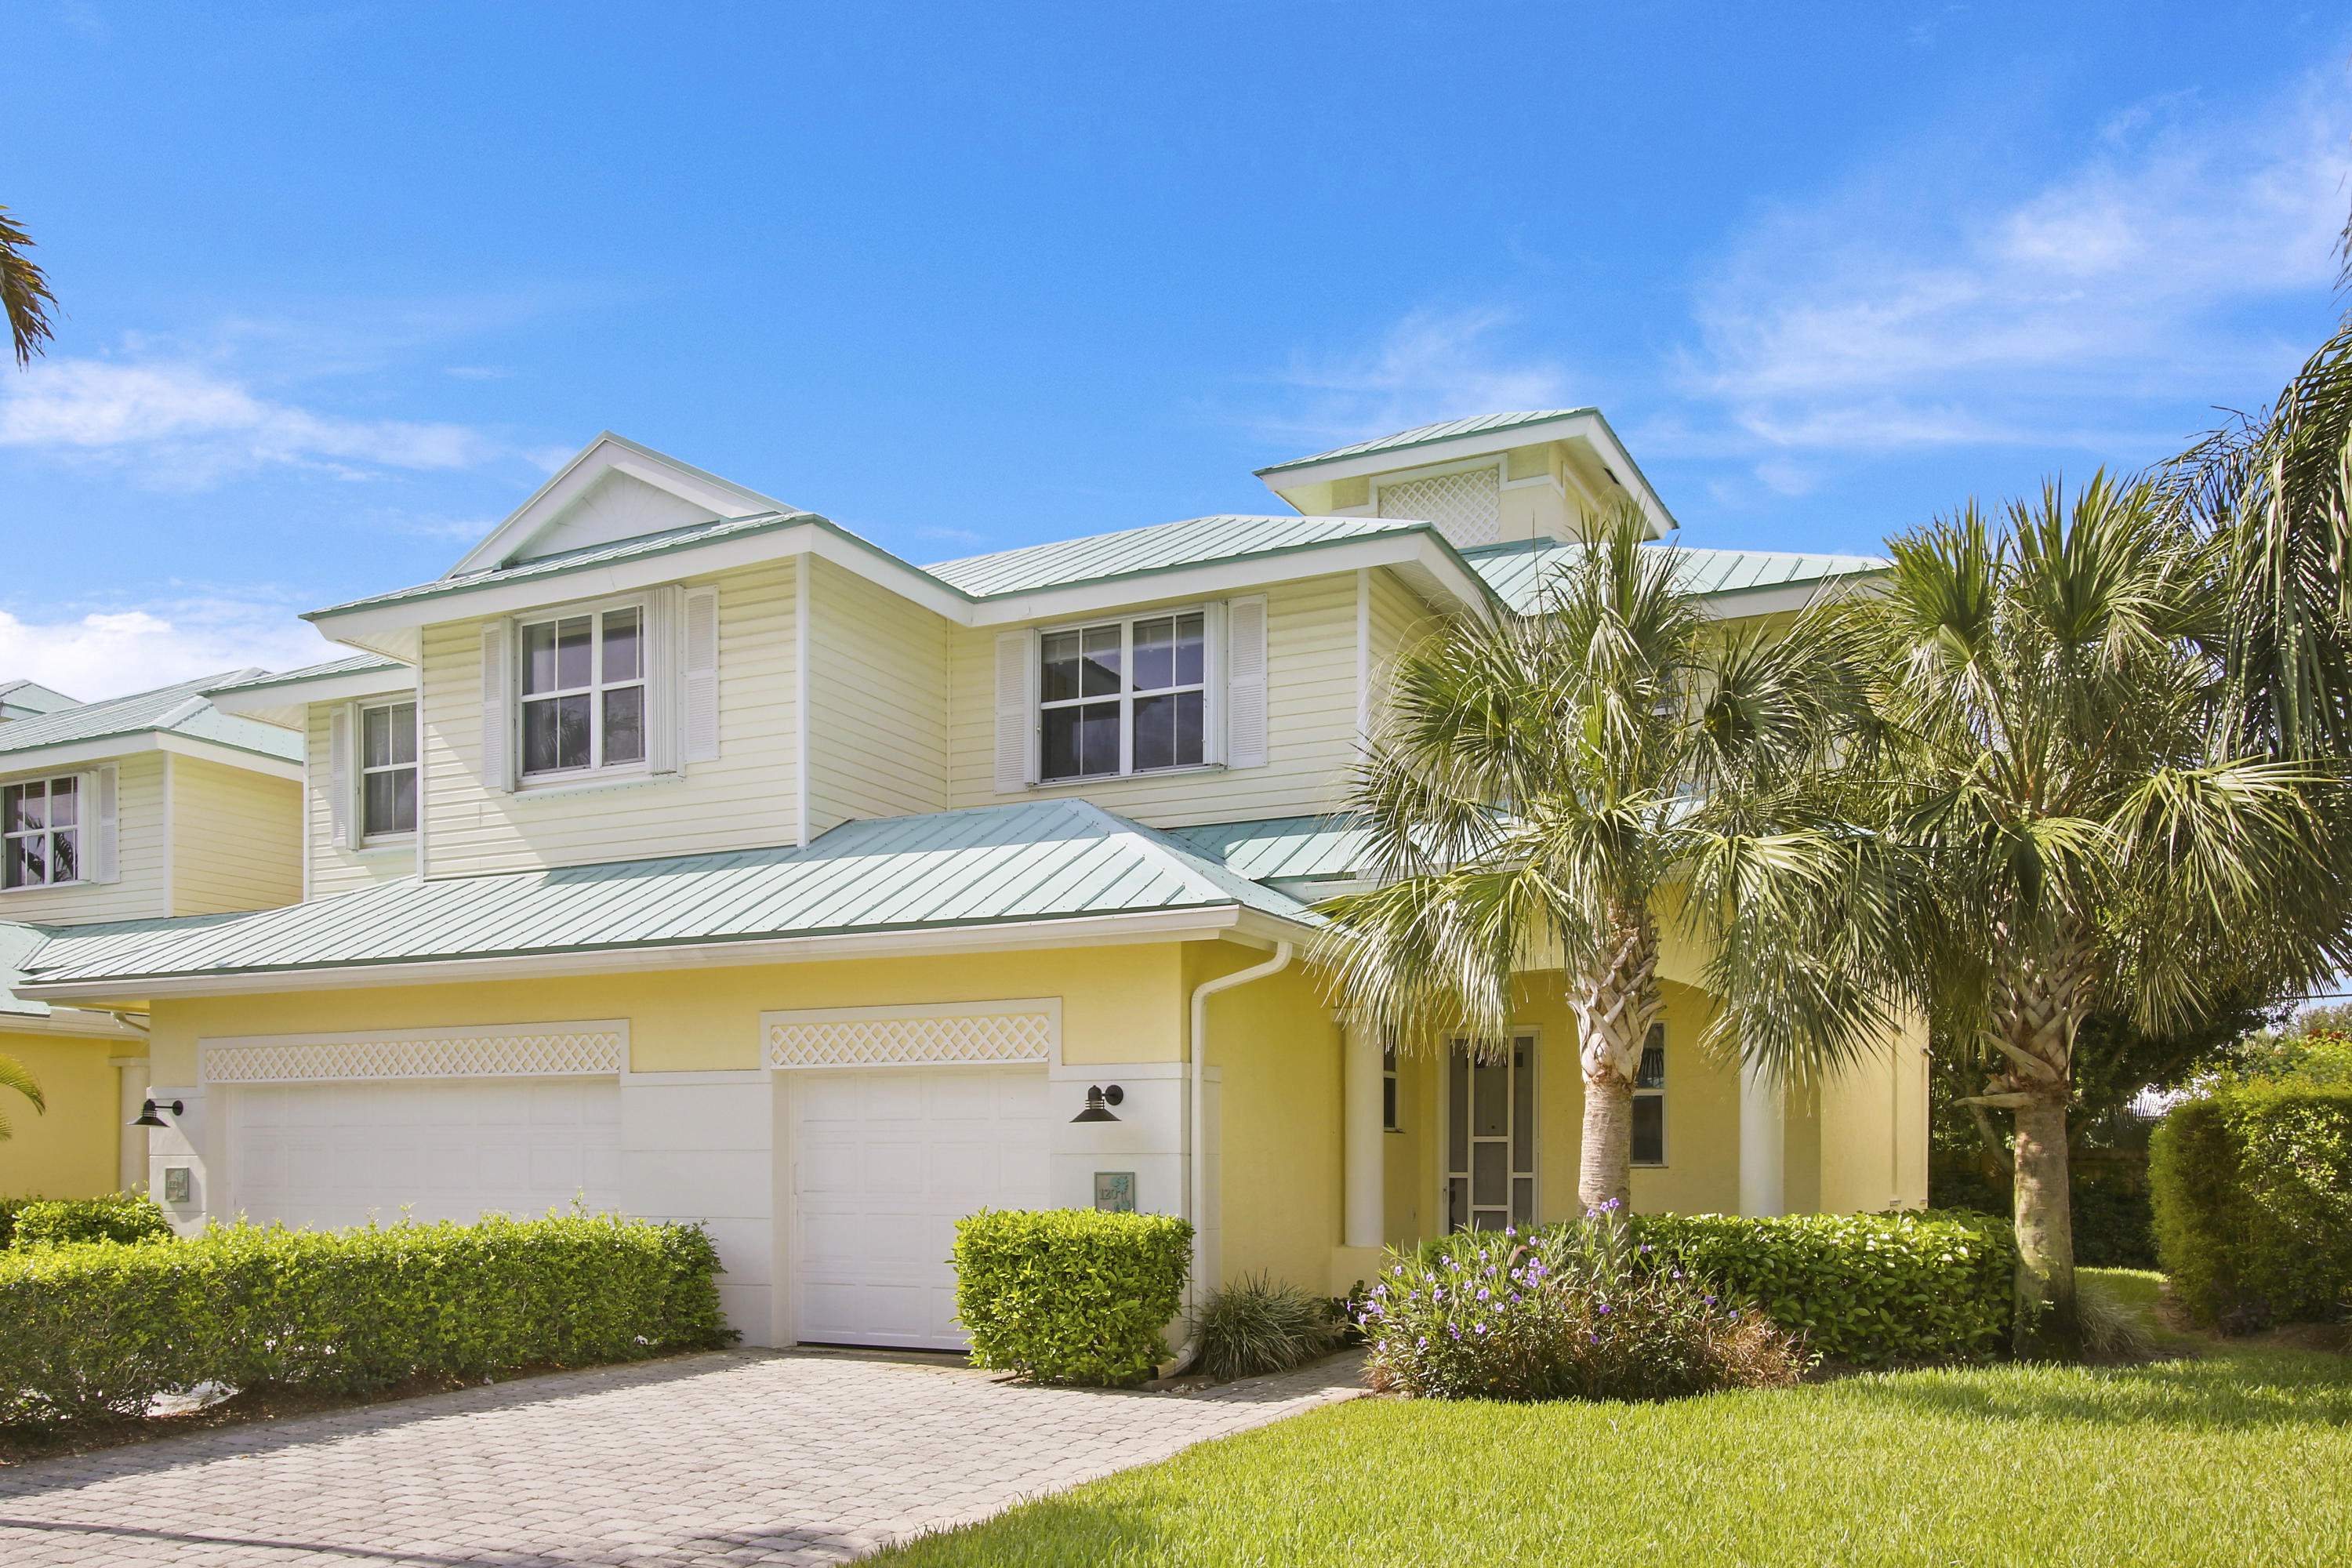 Home for sale in Barefoot Cove Townhomes Hypoluxo Florida